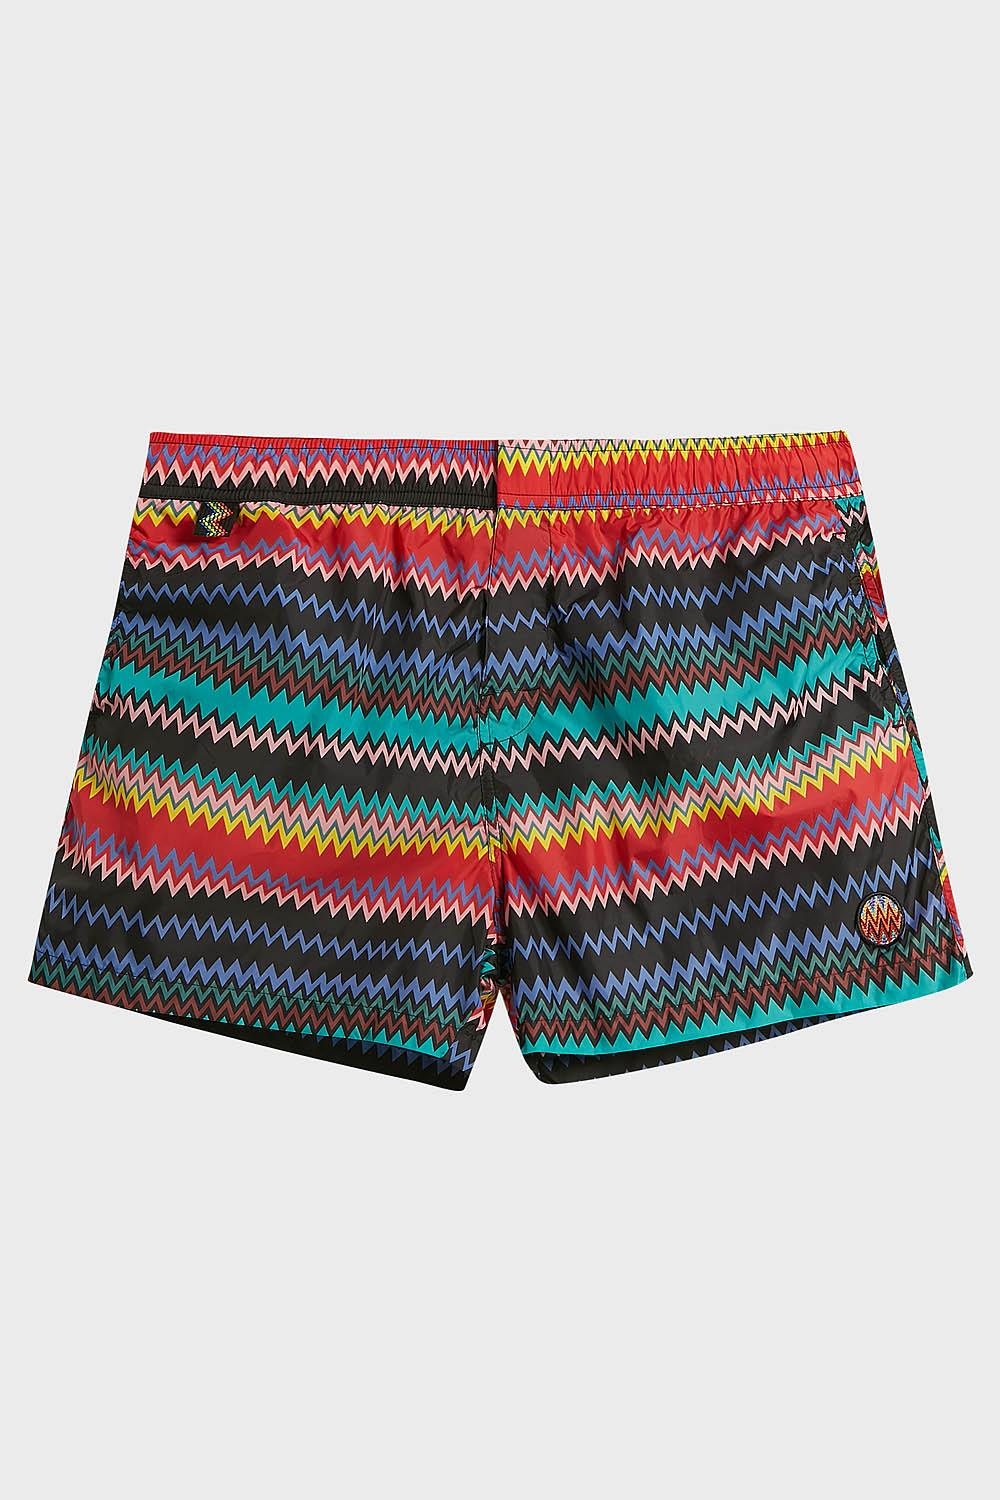 MISSONI Printed Swim Shorts, Size Xxl, Men in Blue